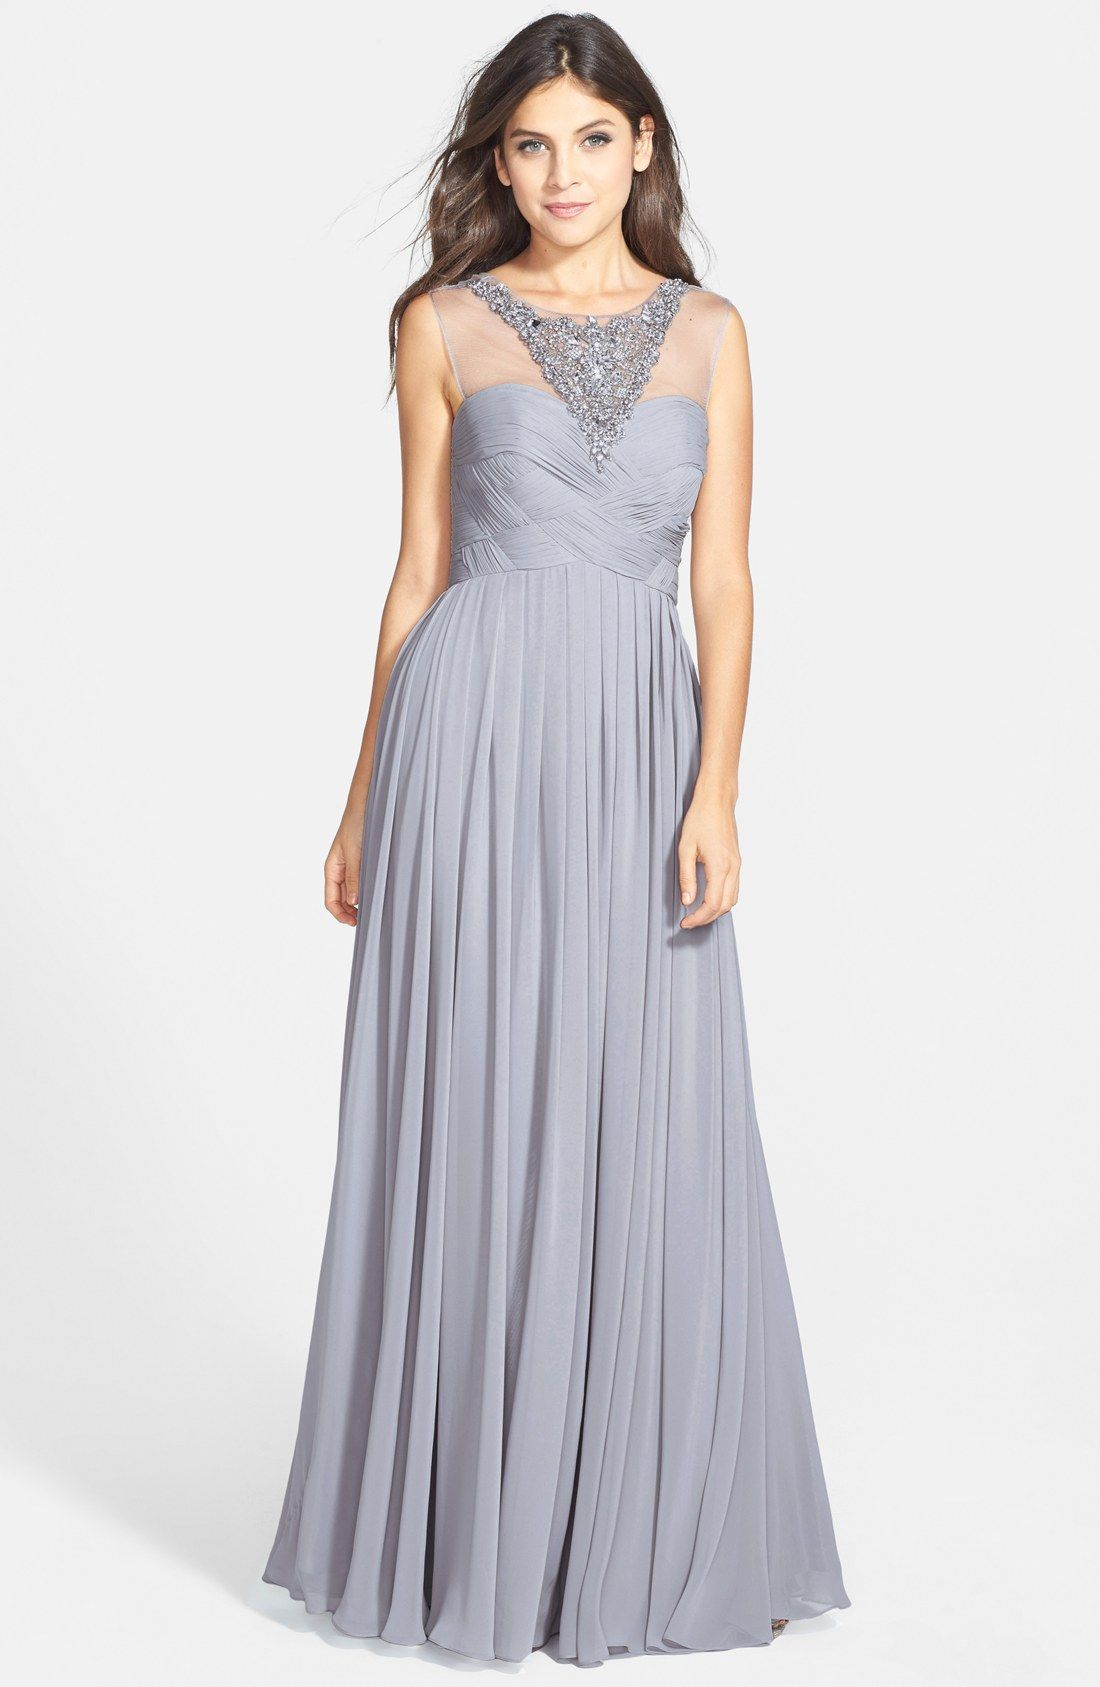 Free shipping and returns on js collections embellished illusion free shipping and returns on js collections embellished illusion yoke chiffon gown at nordstrom ombrellifo Images